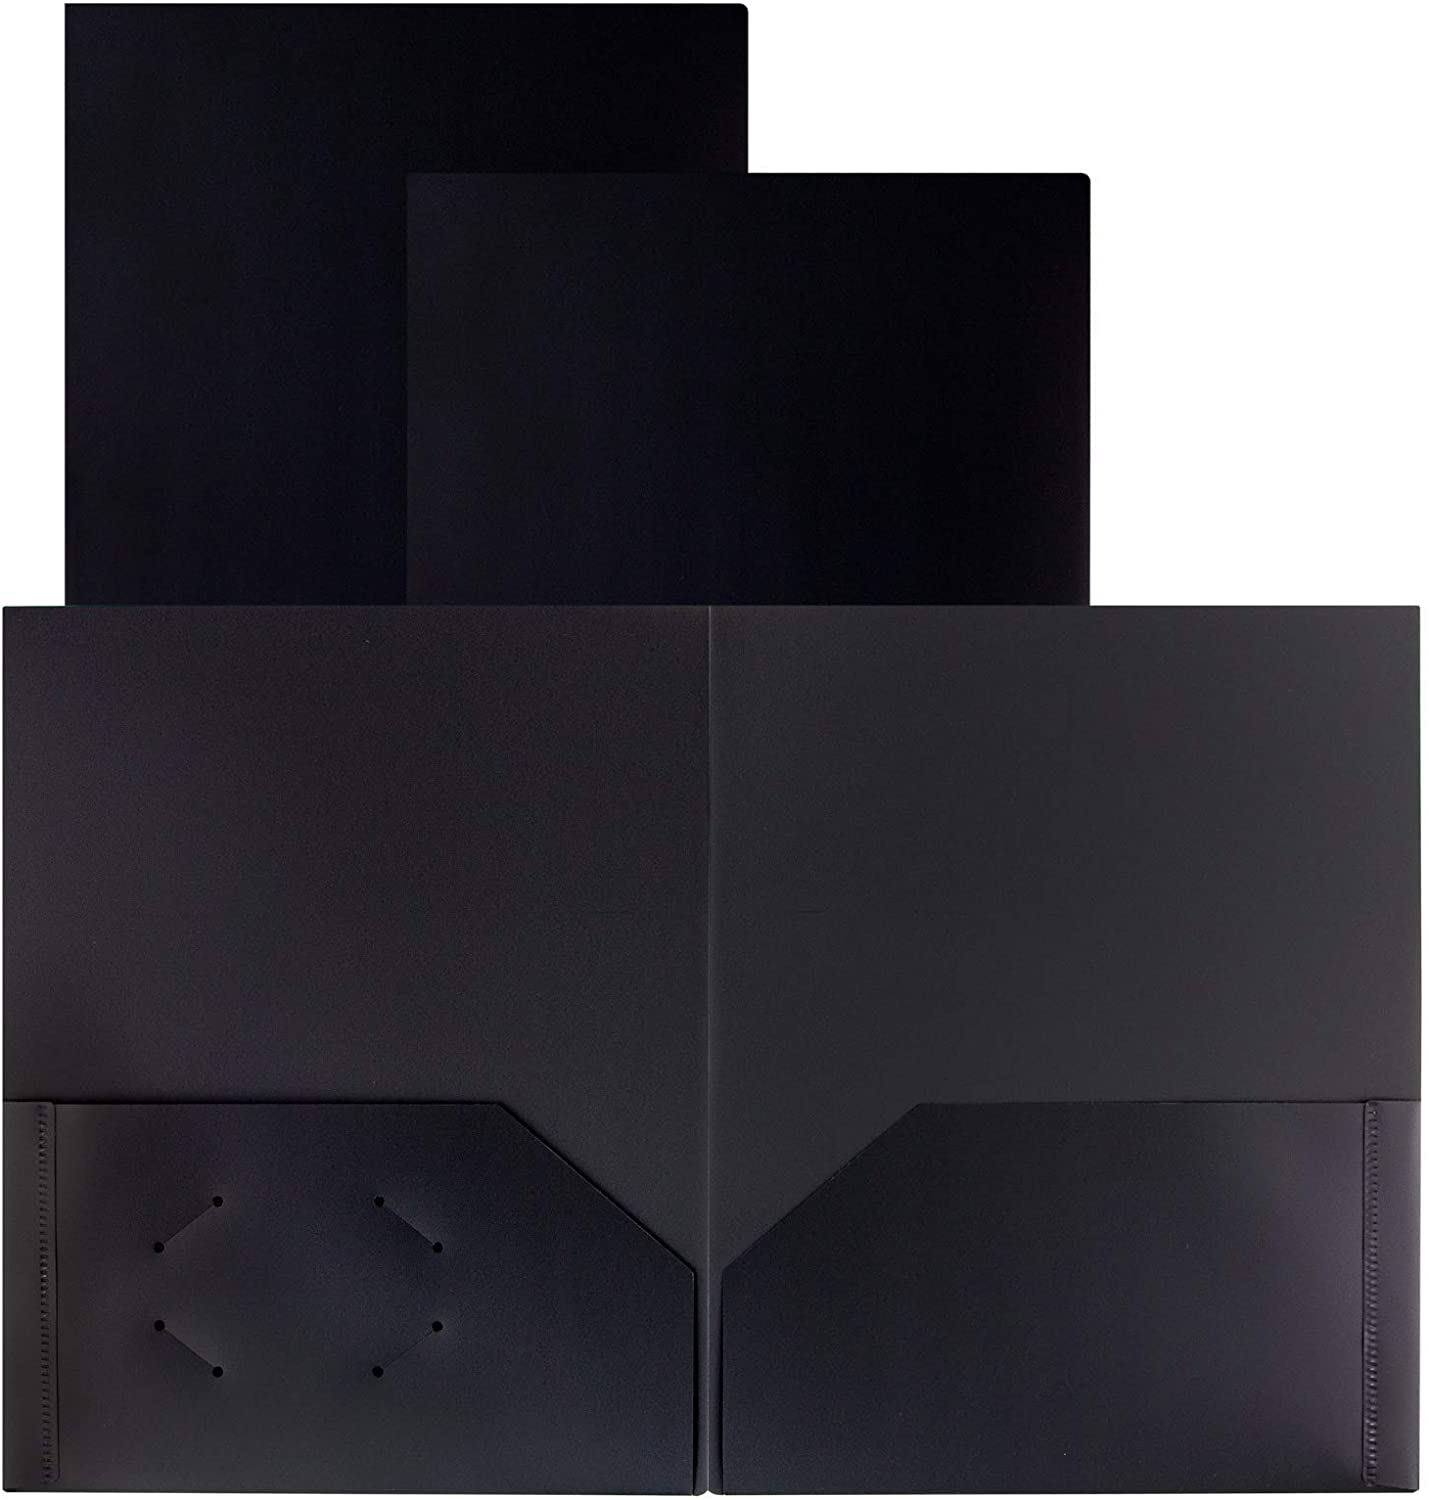 Dunwell Black Folders with Pockets – (3 Pack) Black Plastic Folders, Include Removable Labels, Professional Black Folder 2 Pockets, Heavy Duty Plastic Folder No Prongs for School, Home or Office